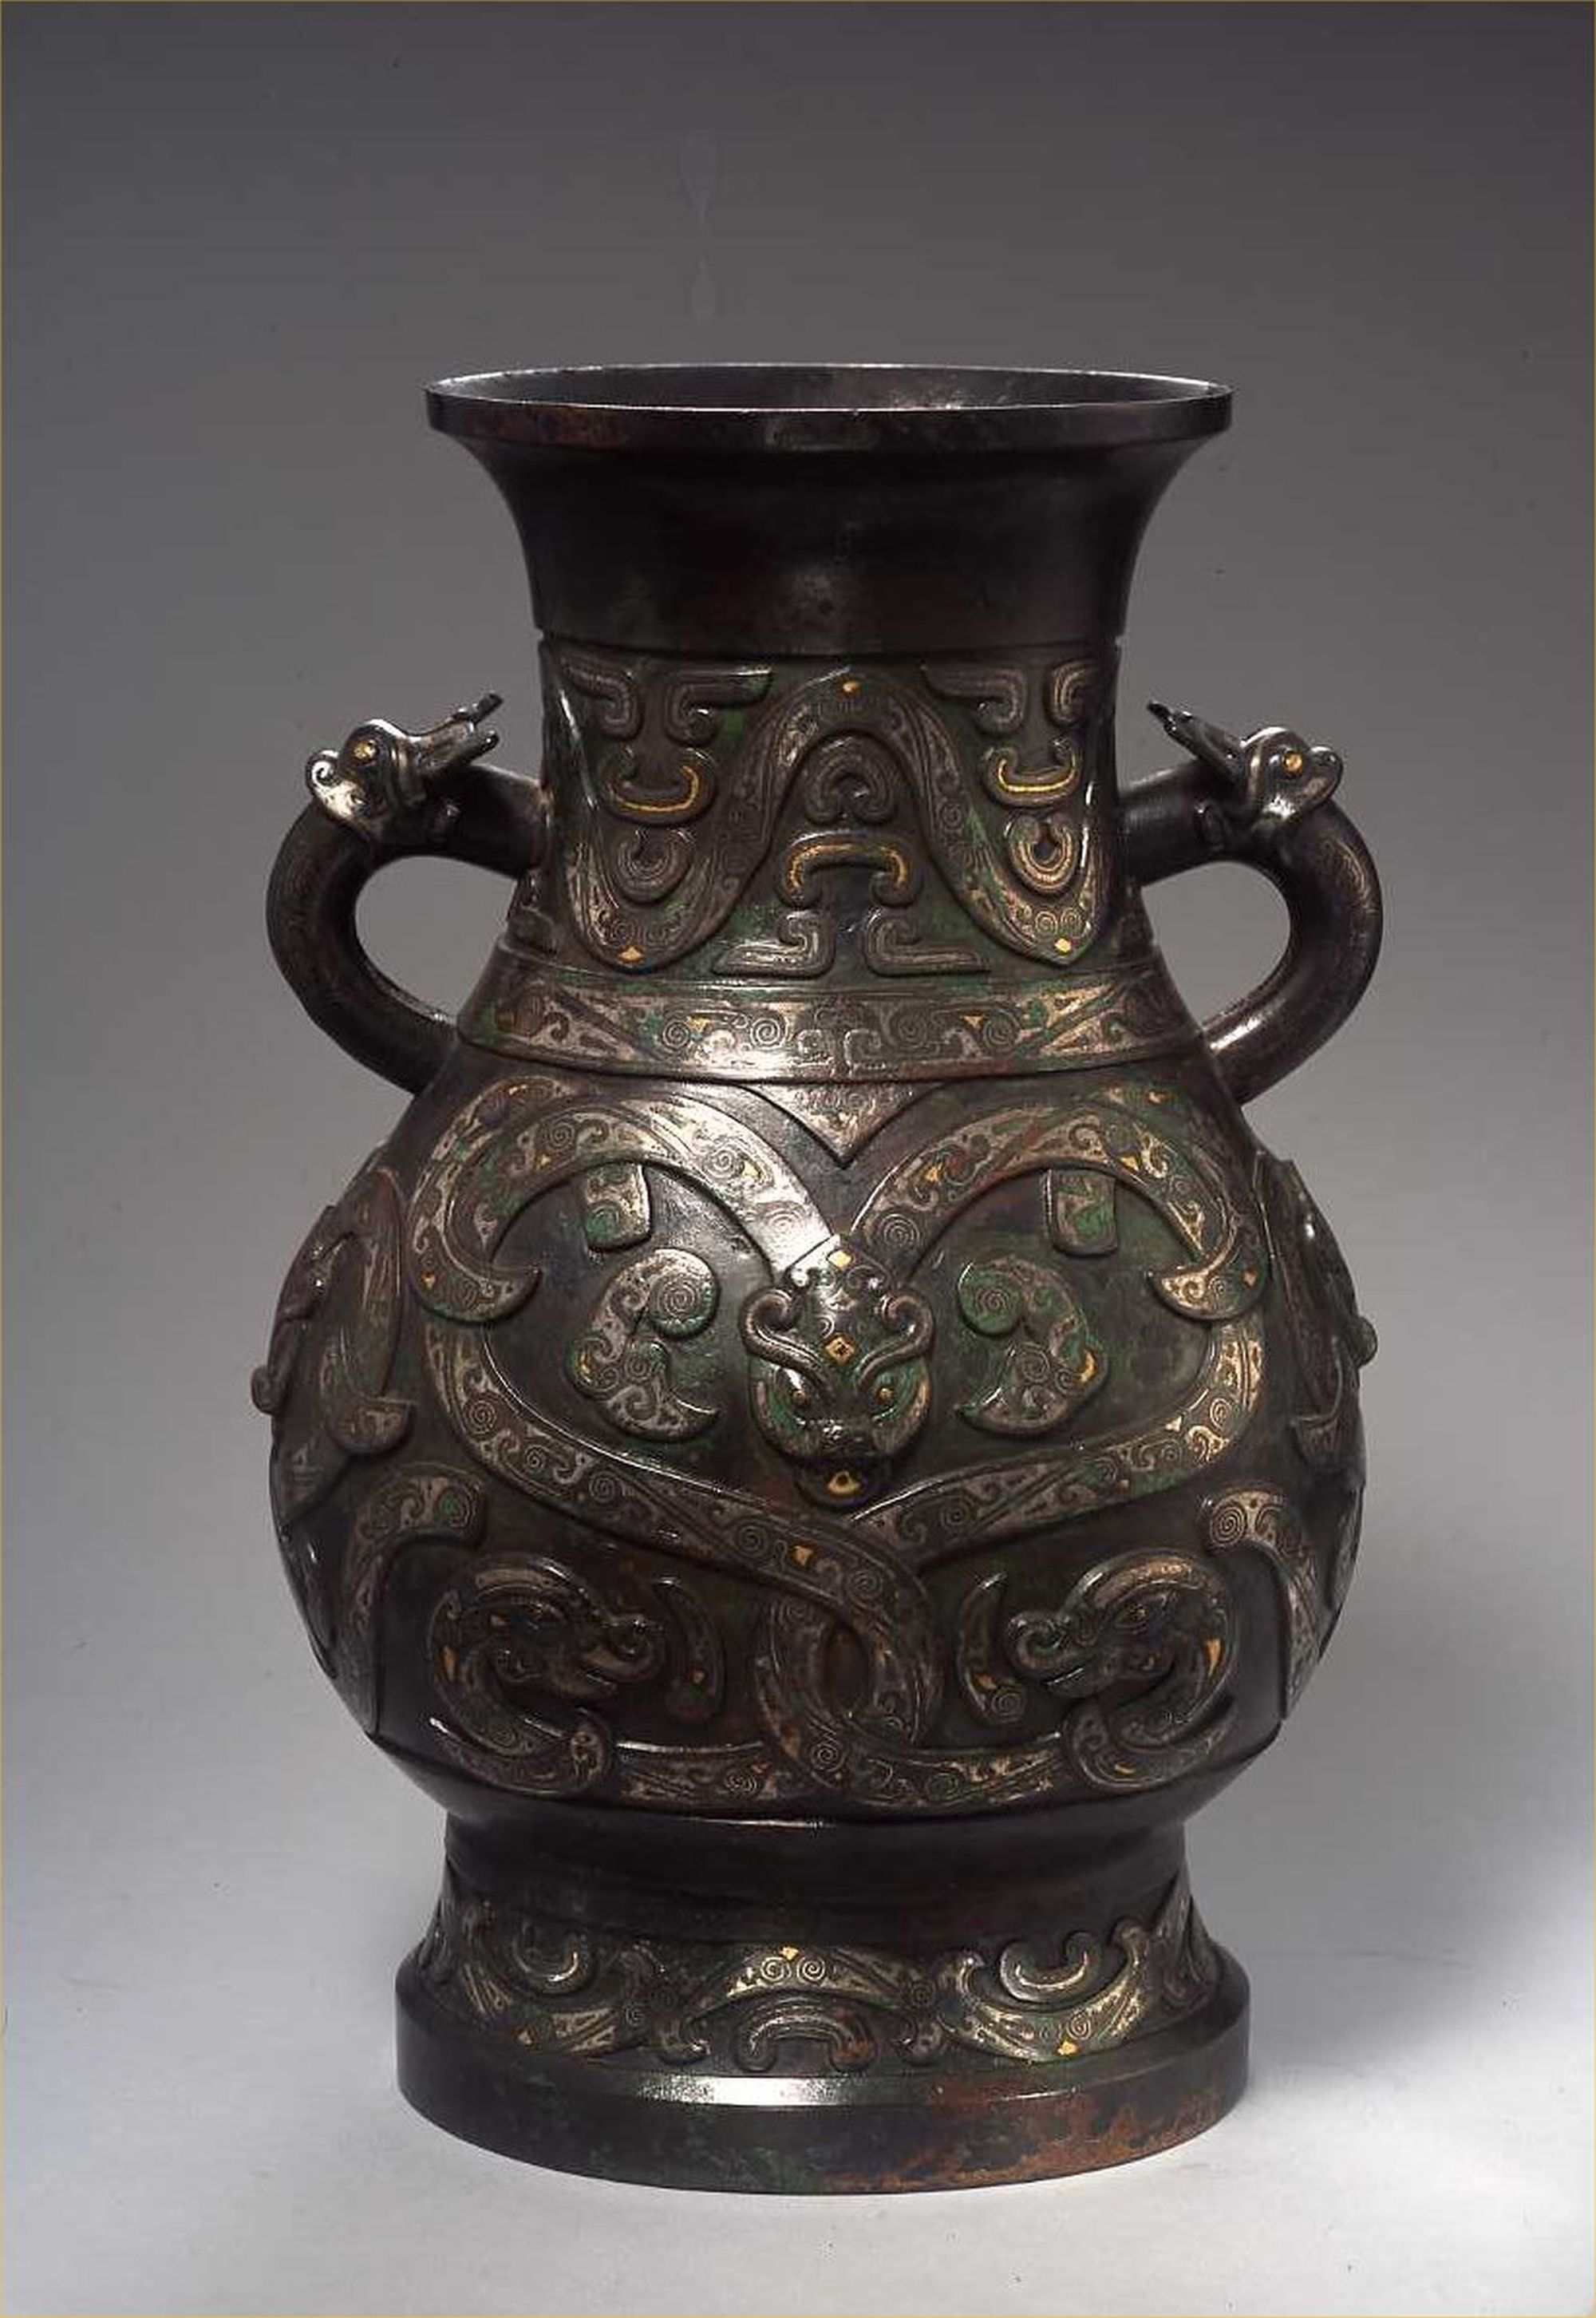 A Bronze Hu Vase Inlaid With Silver And Gold